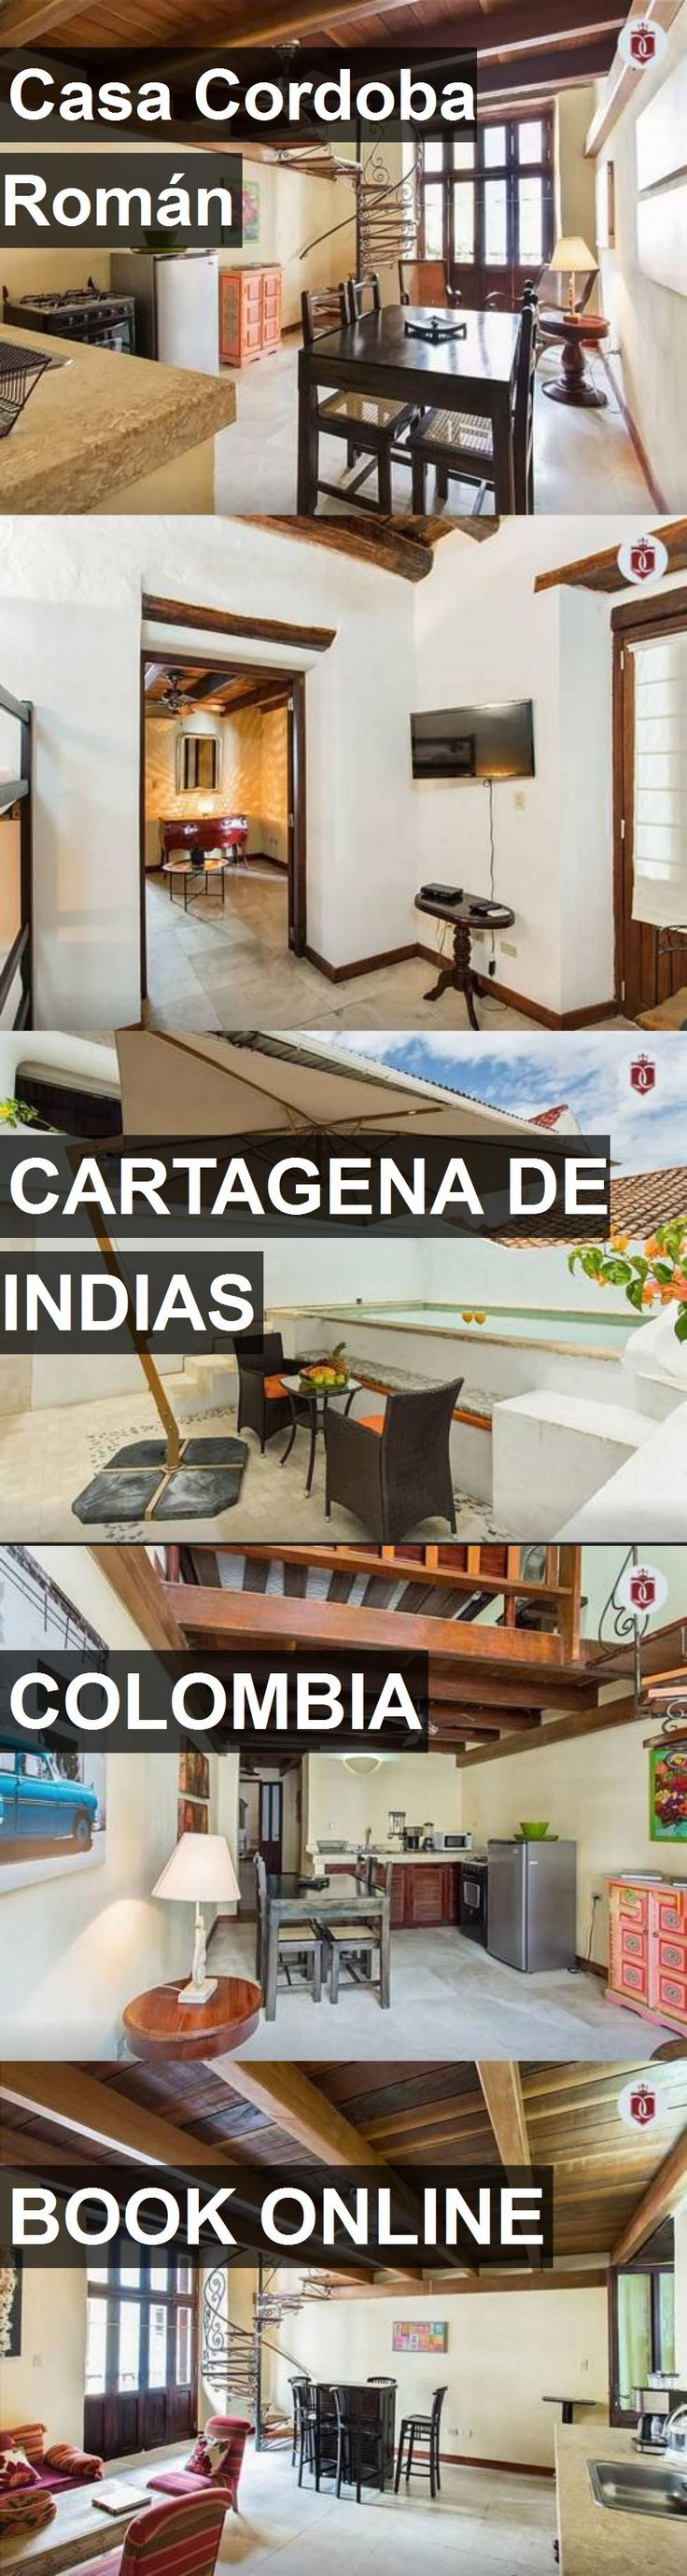 Hotel Casa Cordoba Román in Cartagena de Indias, Colombia. For more information, photos, reviews and best prices please follow the link. #Colombia #CartagenadeIndias #travel #vacation #hotel